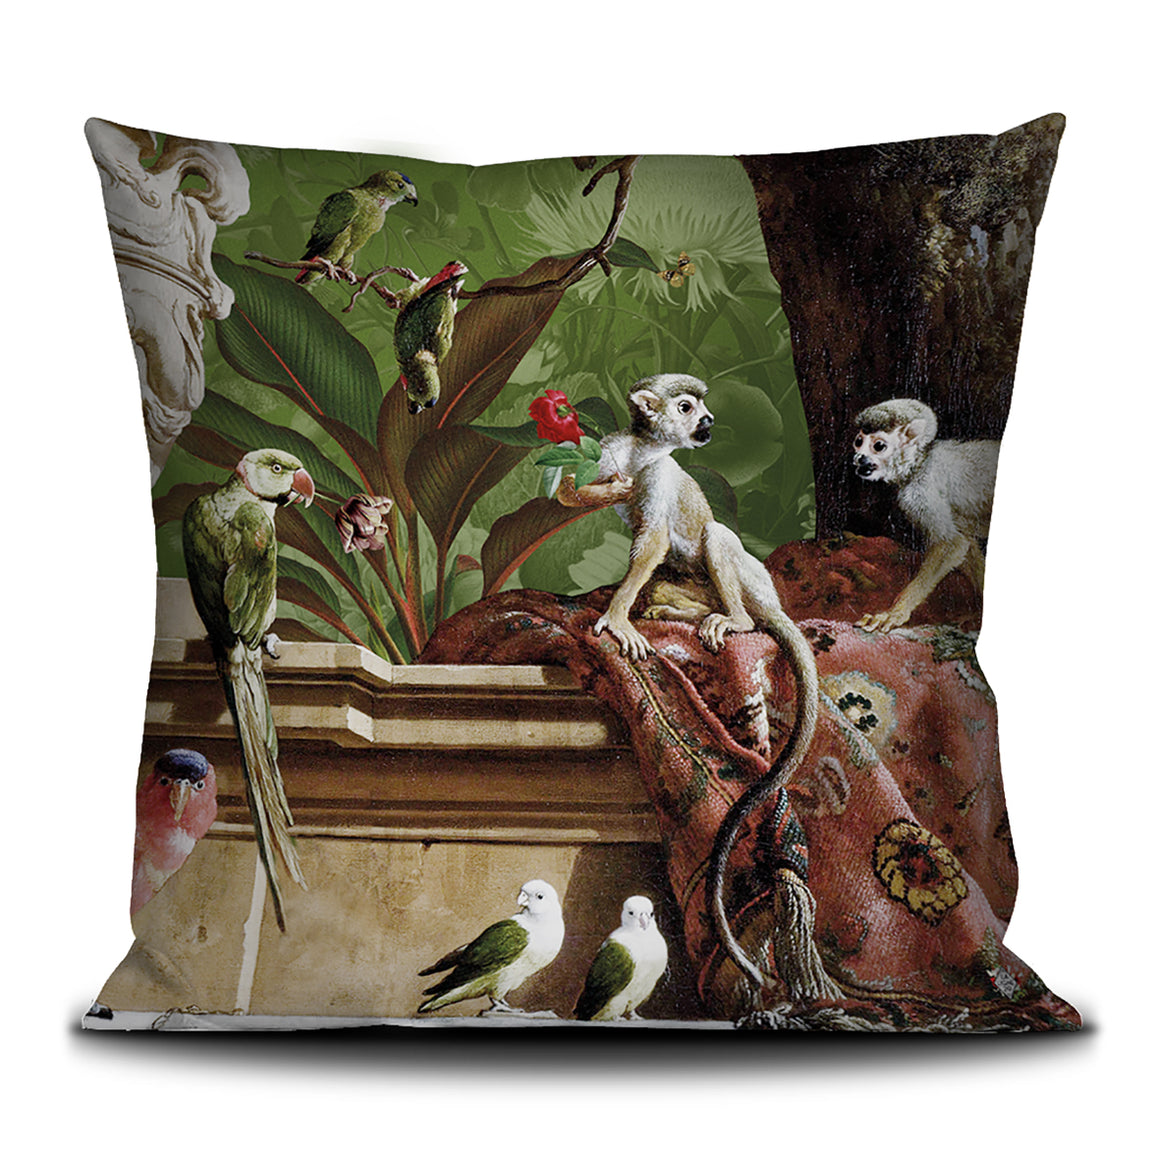 La Menagerie scatter cushion